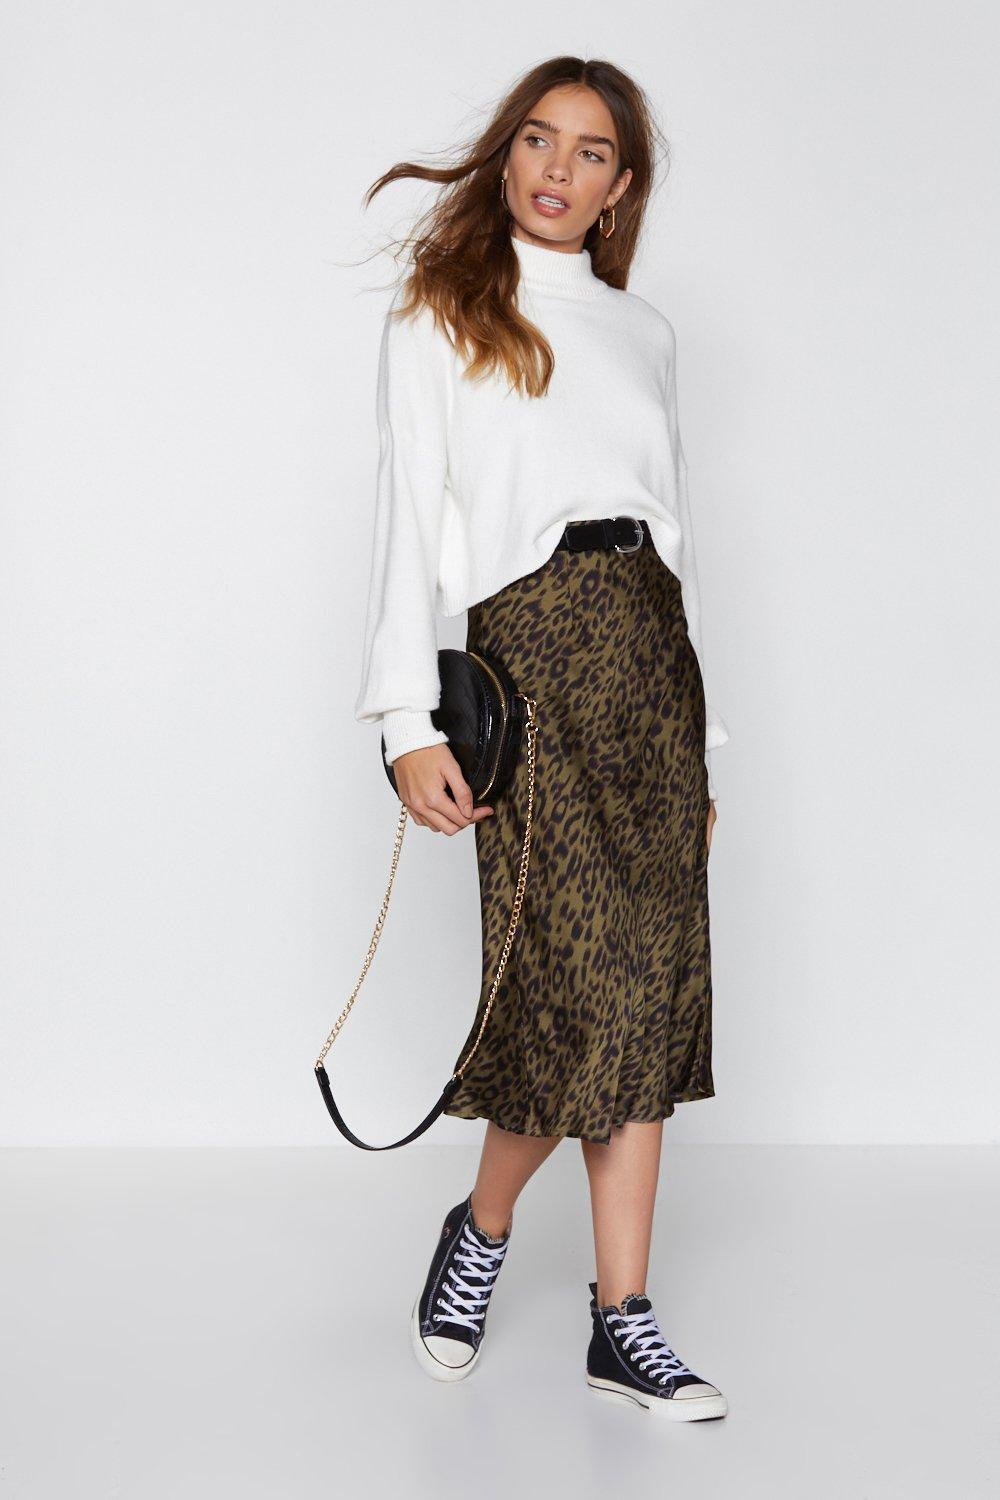 487a41accb The End of Love Satin Midi Skirt | Shop Clothes at Nasty Gal!